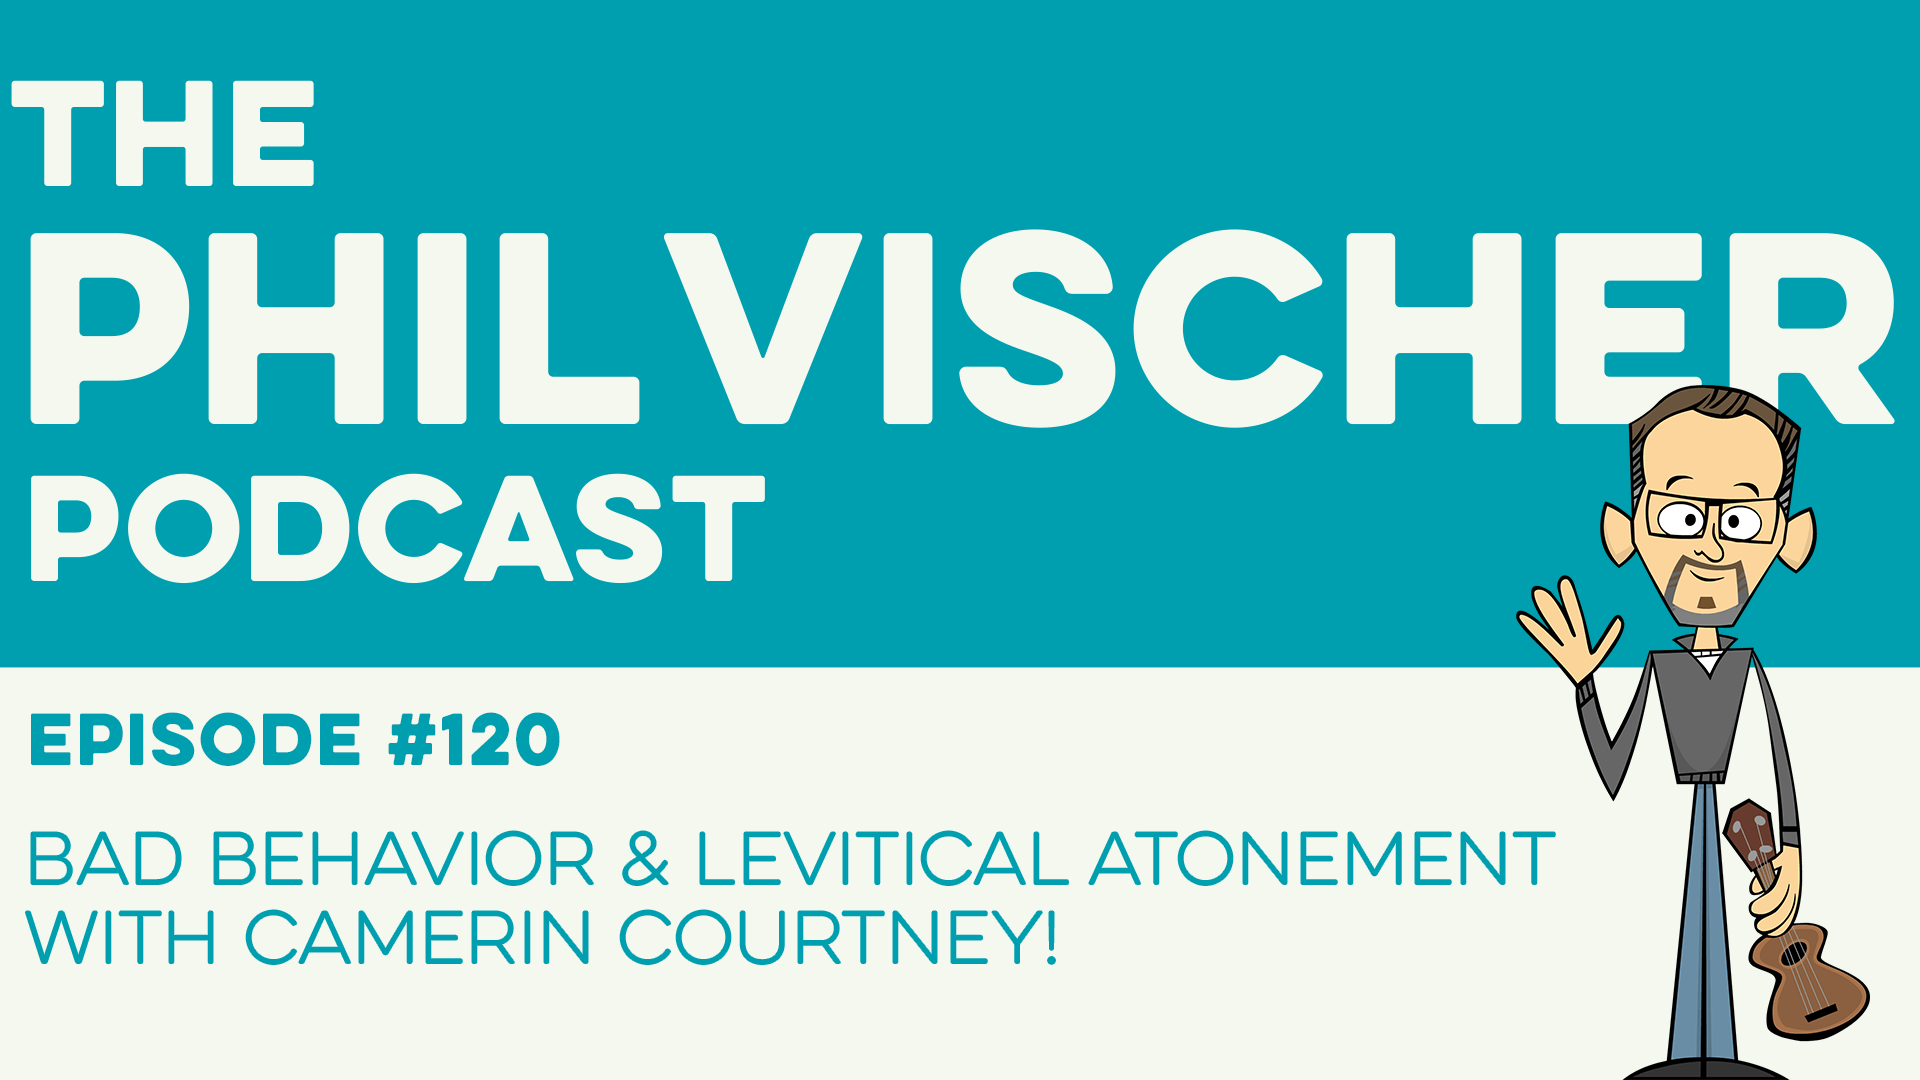 Episode 120 Bad Behavior And Levitical Atonement With Camerin Courtney